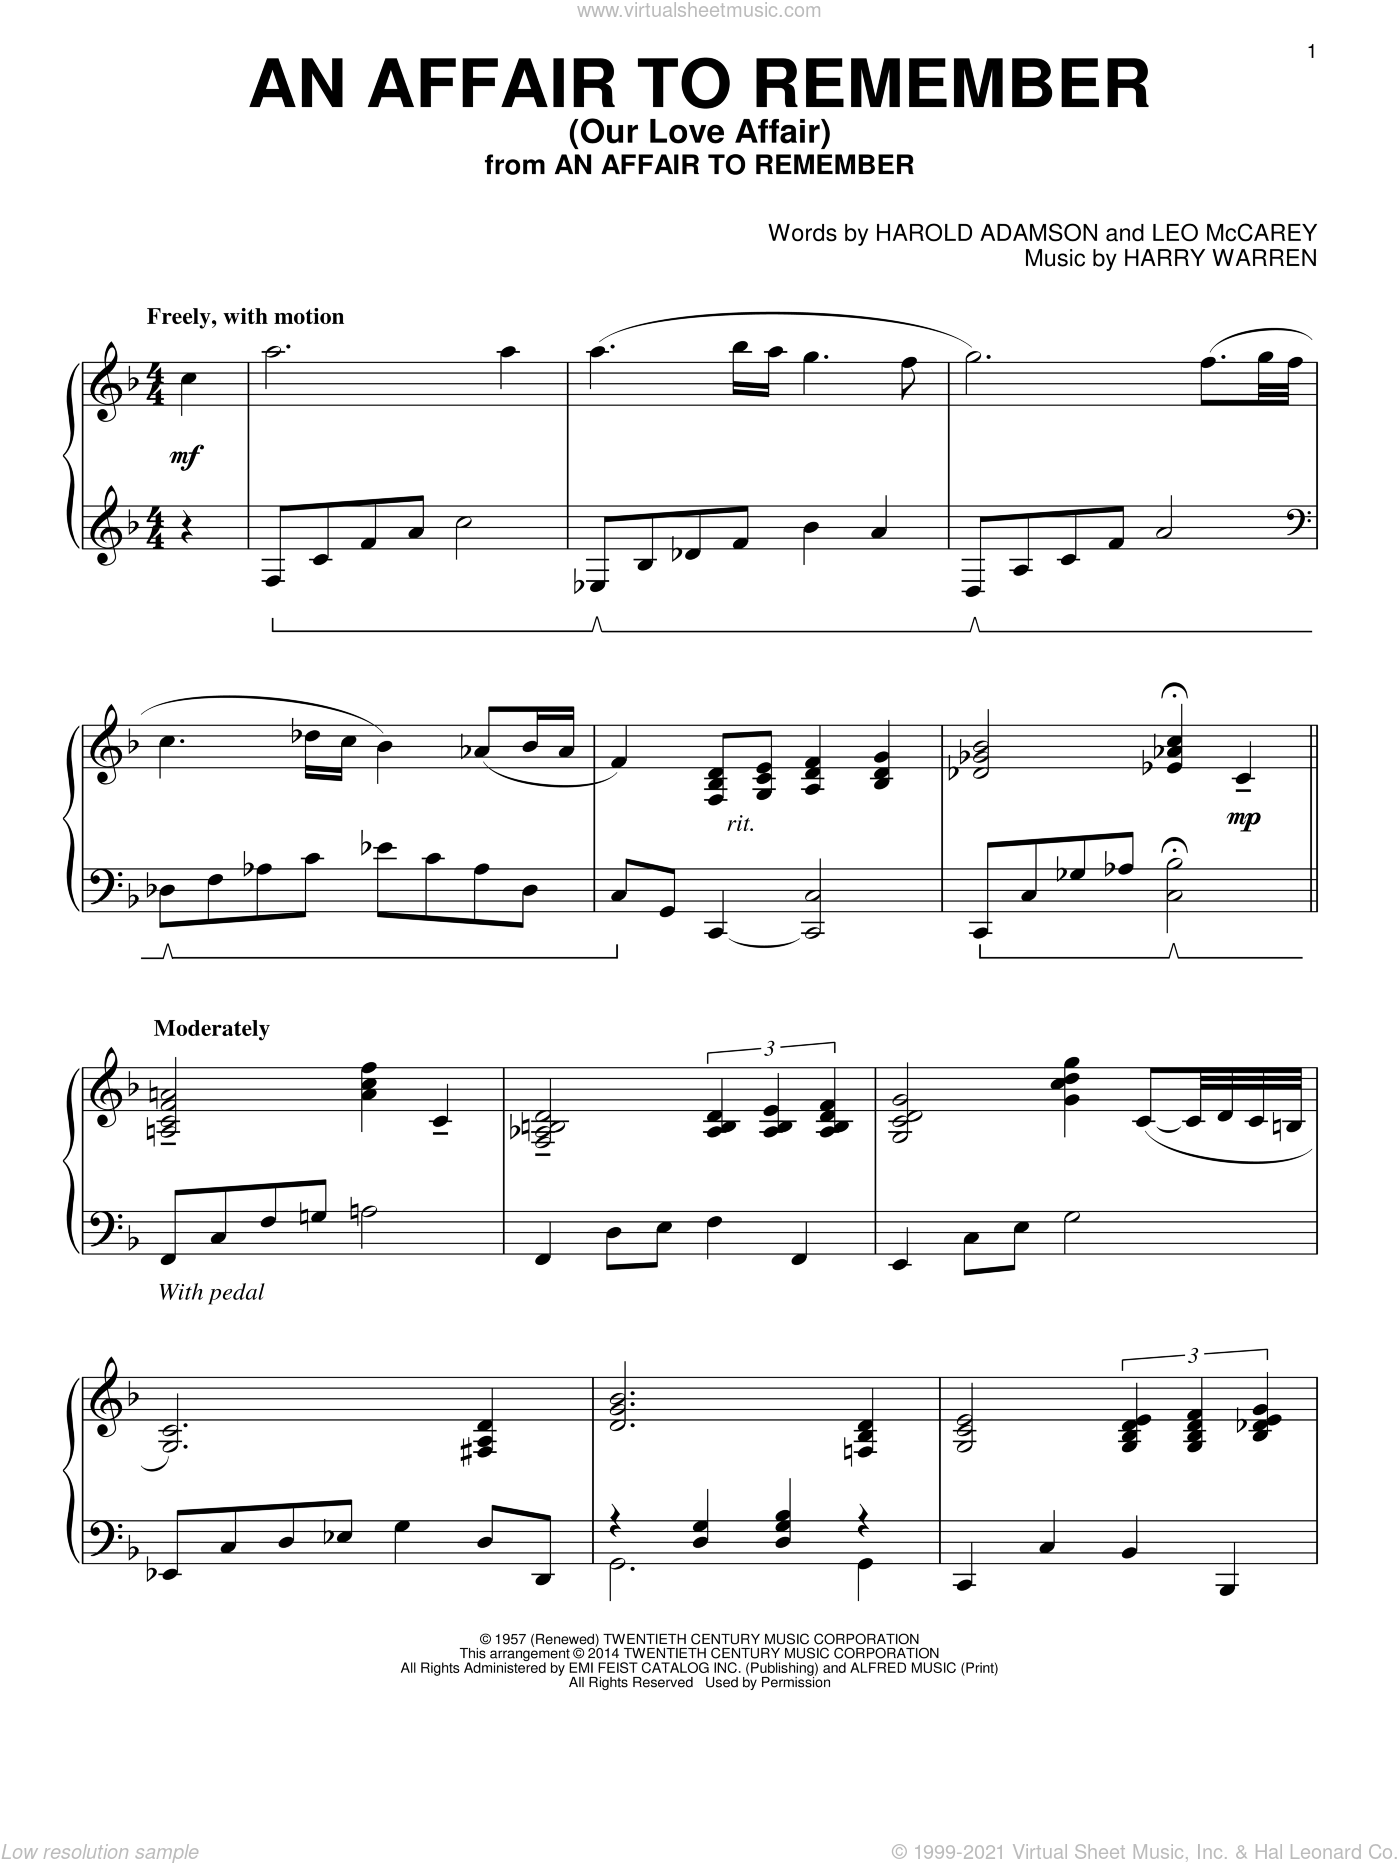 An Affair To Remember (Our Love Affair) sheet music for piano solo by Leo McCarey